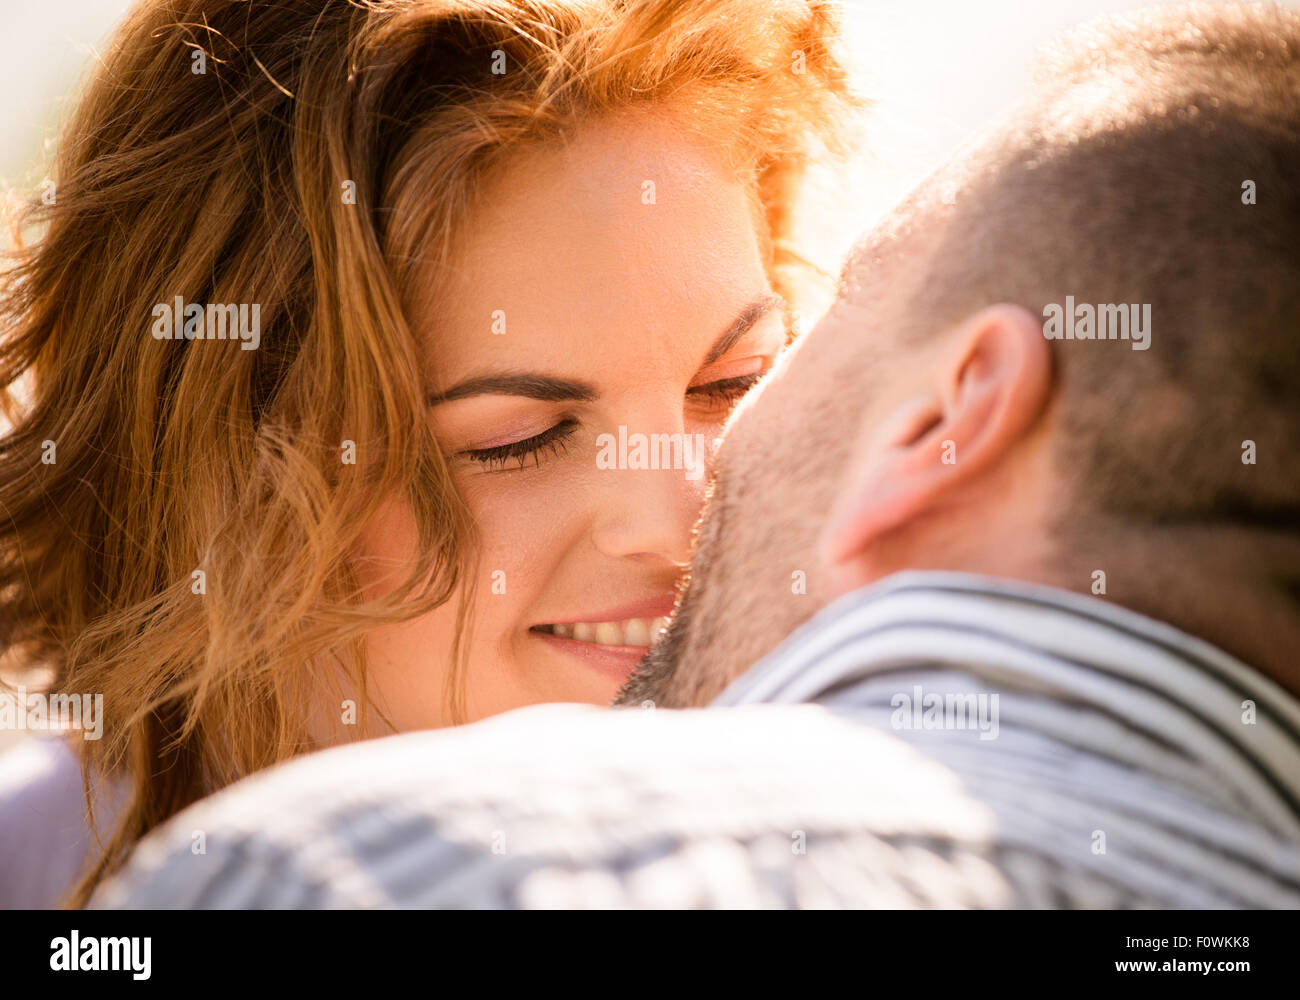 La photo en gros plan de Candide man kissing young smiling woman Photo Stock